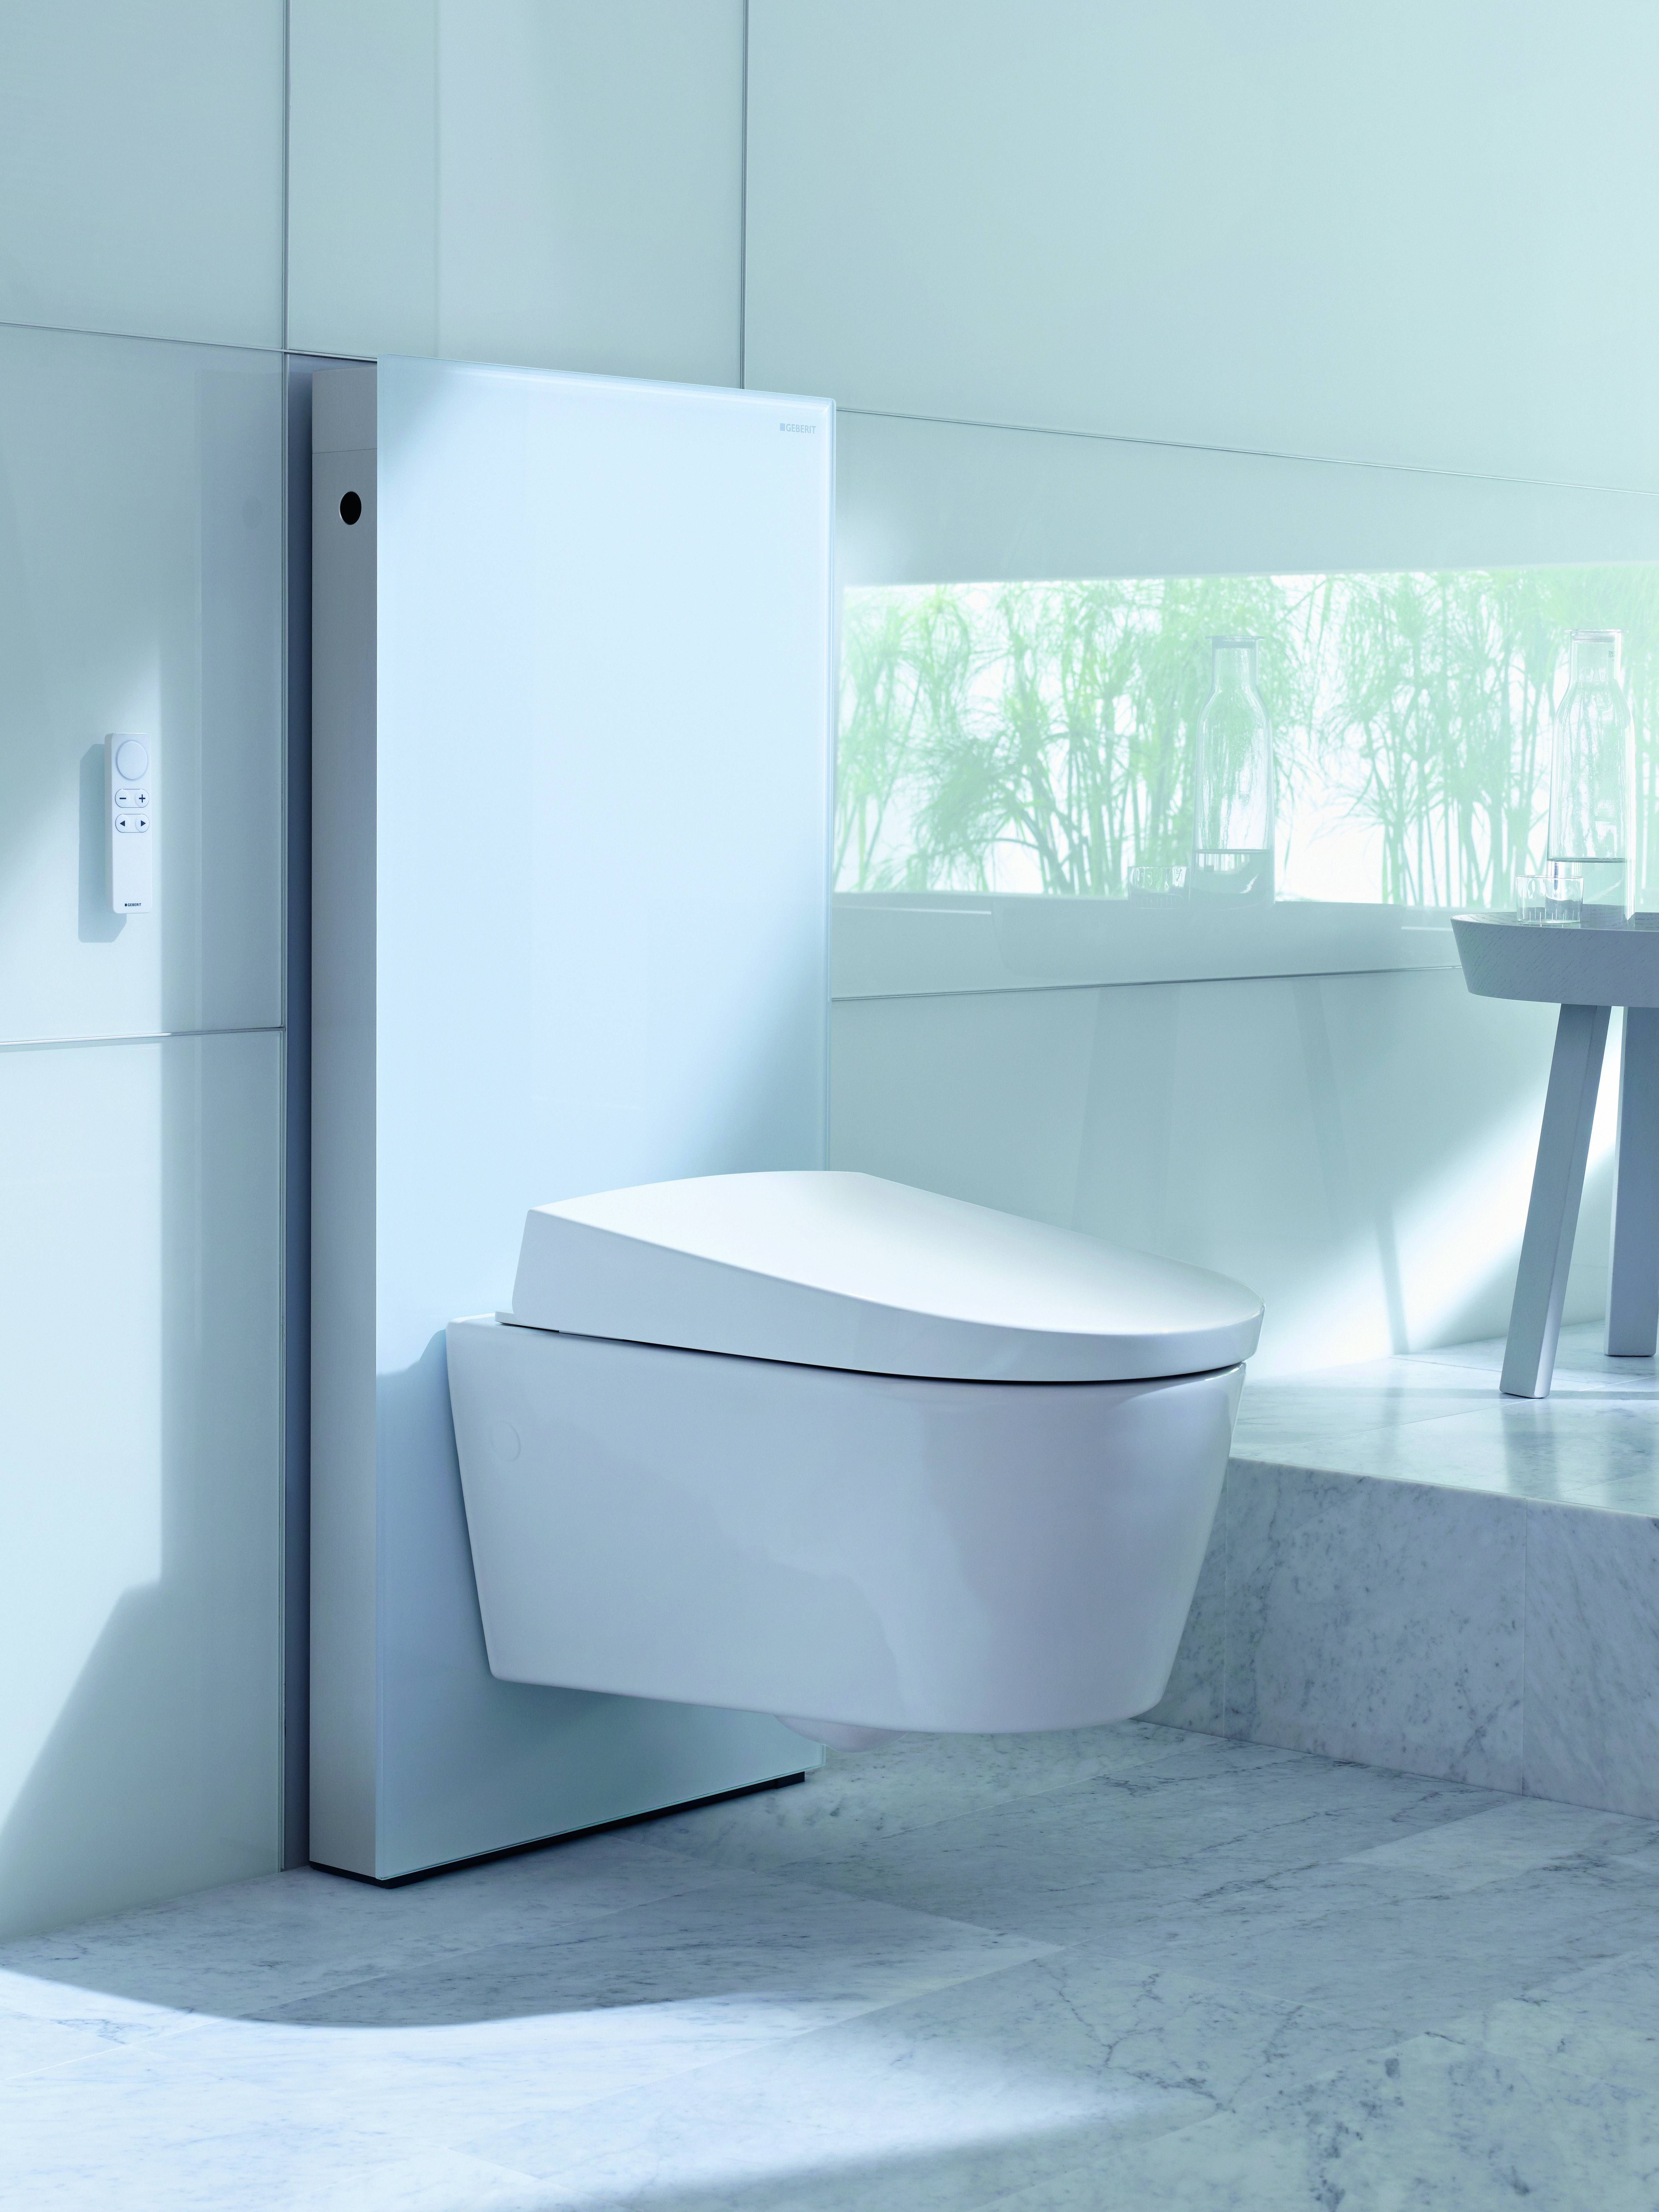 Simply Compact Elegant And Modern Matteo Thun Designed Our Shower Toilet Sela That It Fits Into Any Bathroom Geberitaquacleansela Ge Design Toiletruimte